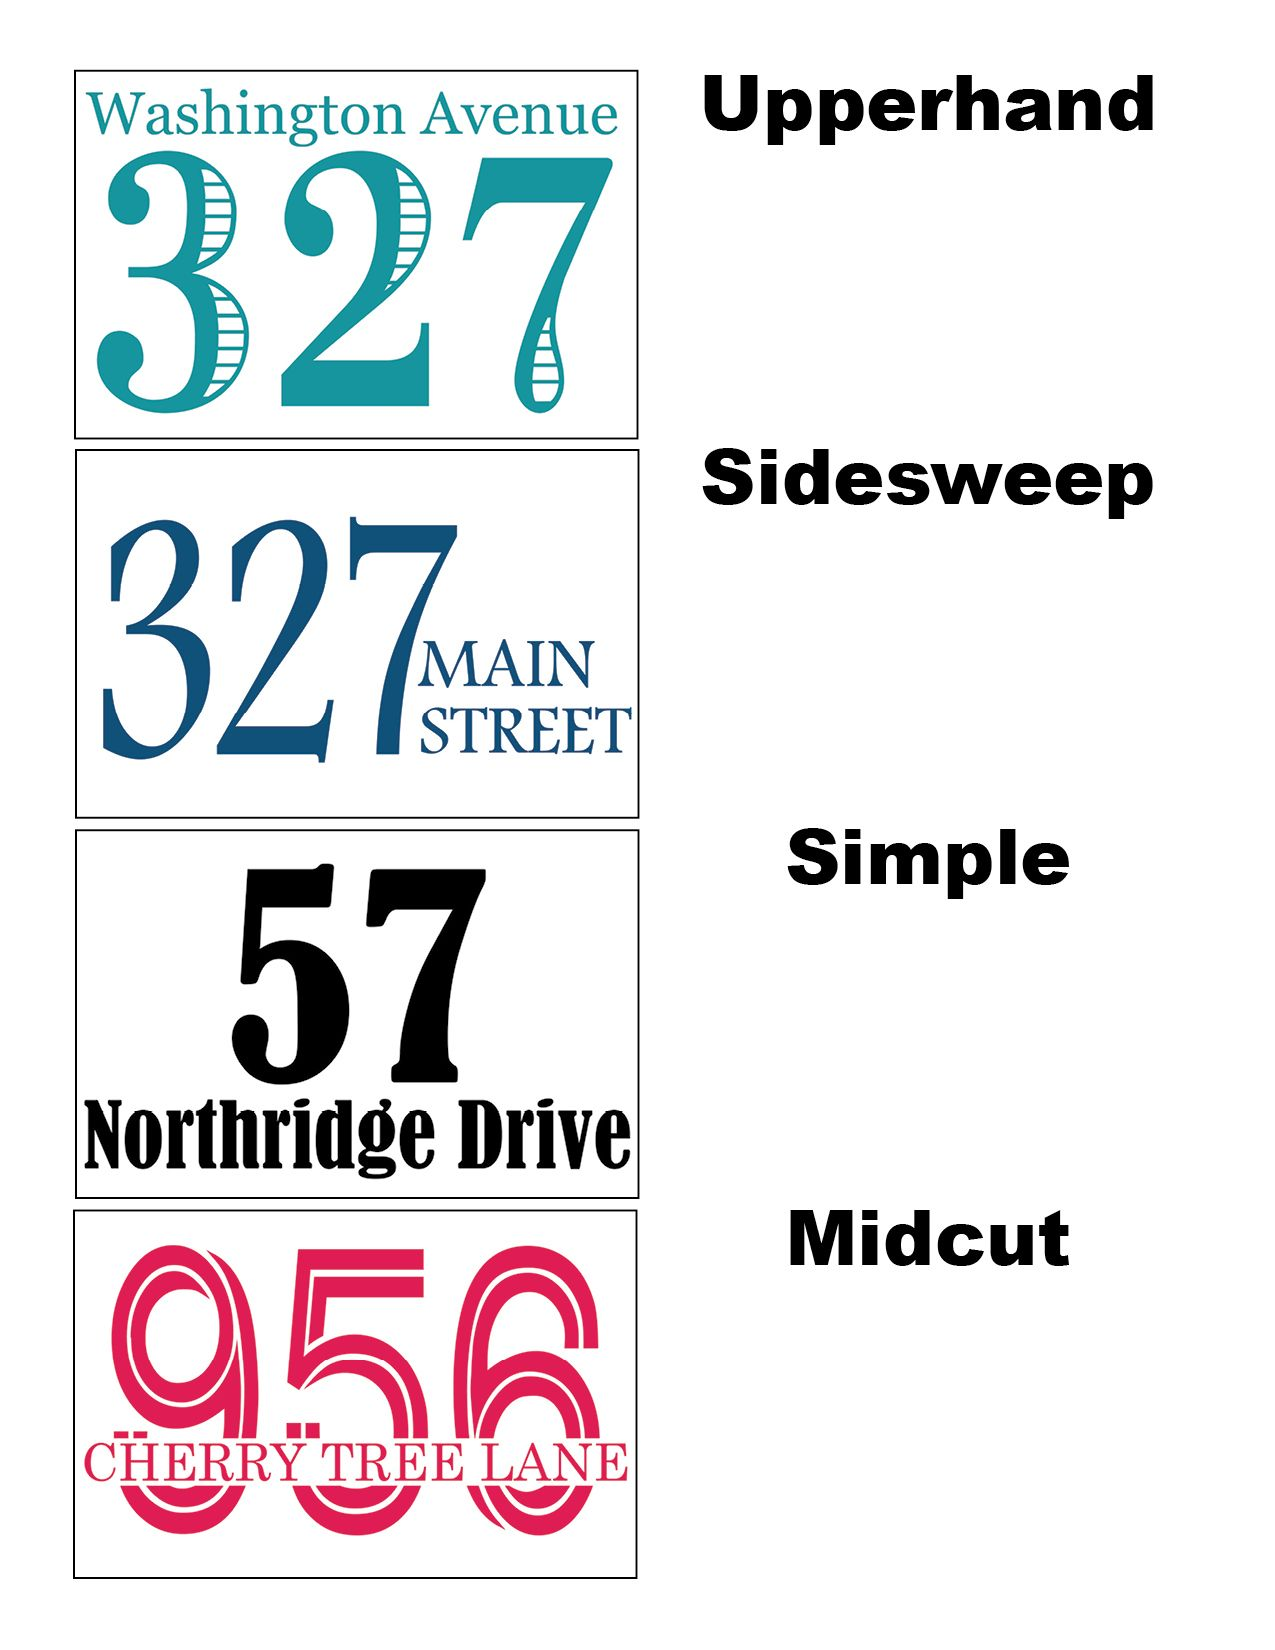 Mailbox decal options